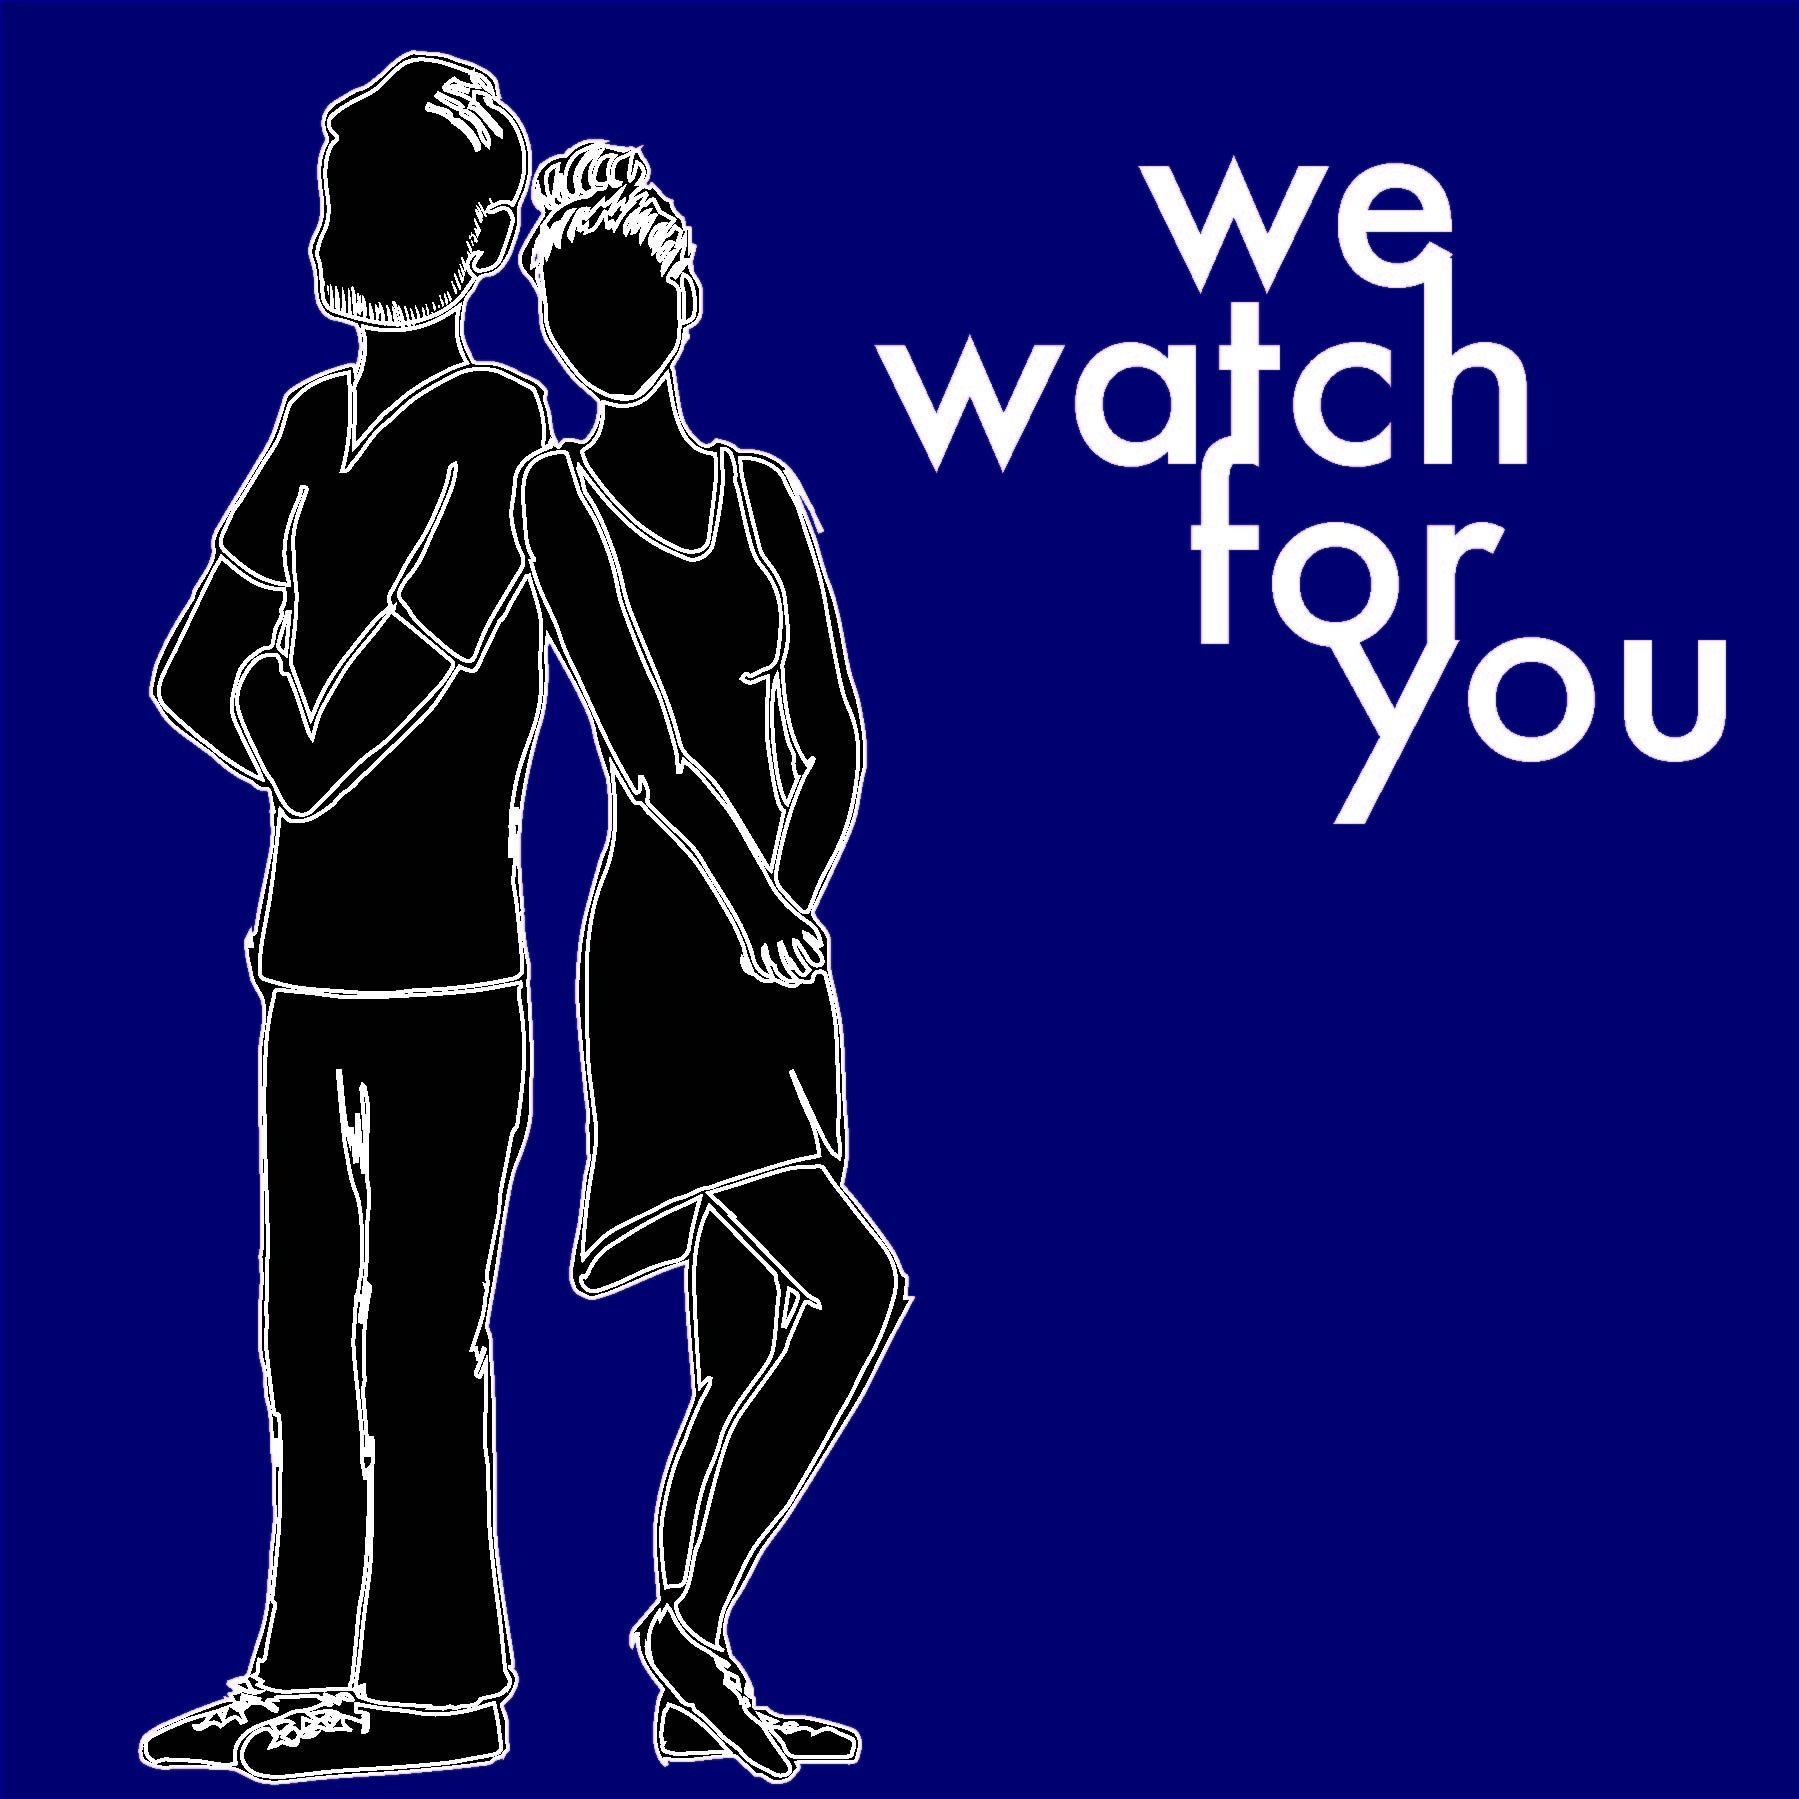 We Watch For You